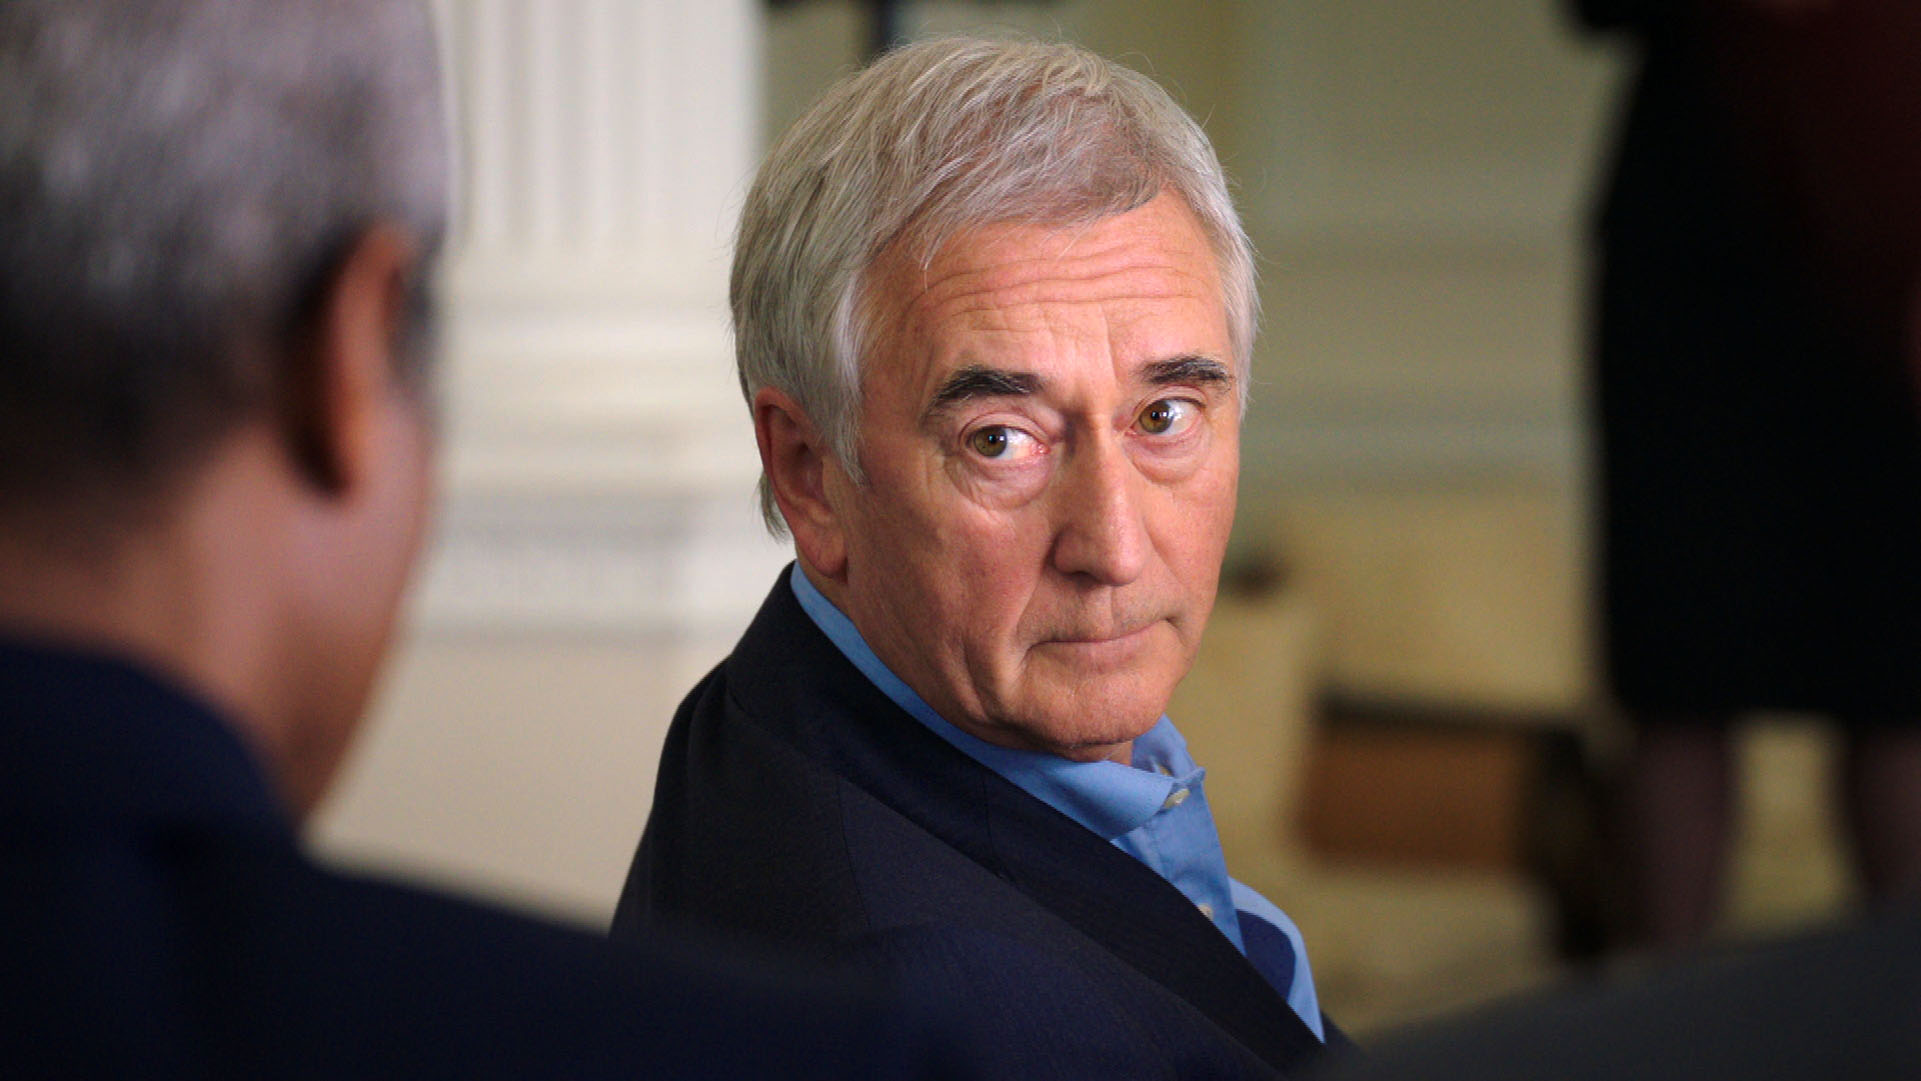 Denis Lawson as Tom Campbell-Gore